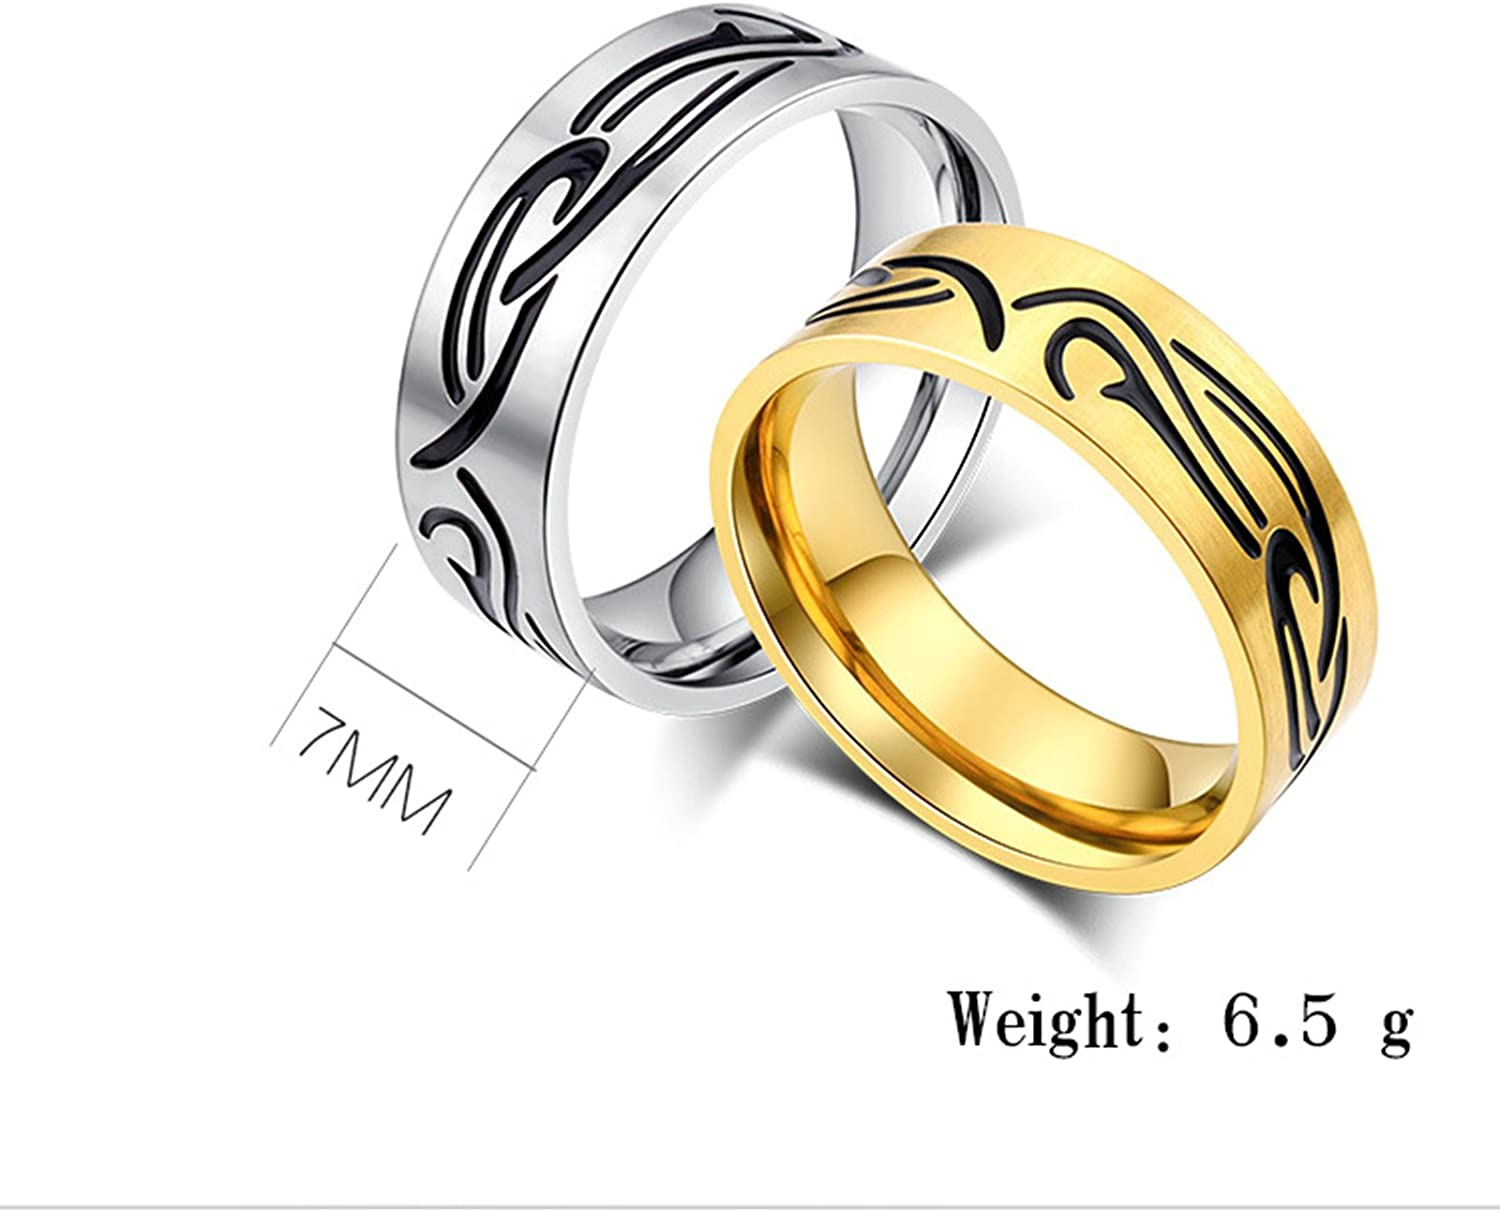 Bishilin 4mm Stainless Steel Wedding Bands for Men Silver Matte Engagement Rings Size:6.5